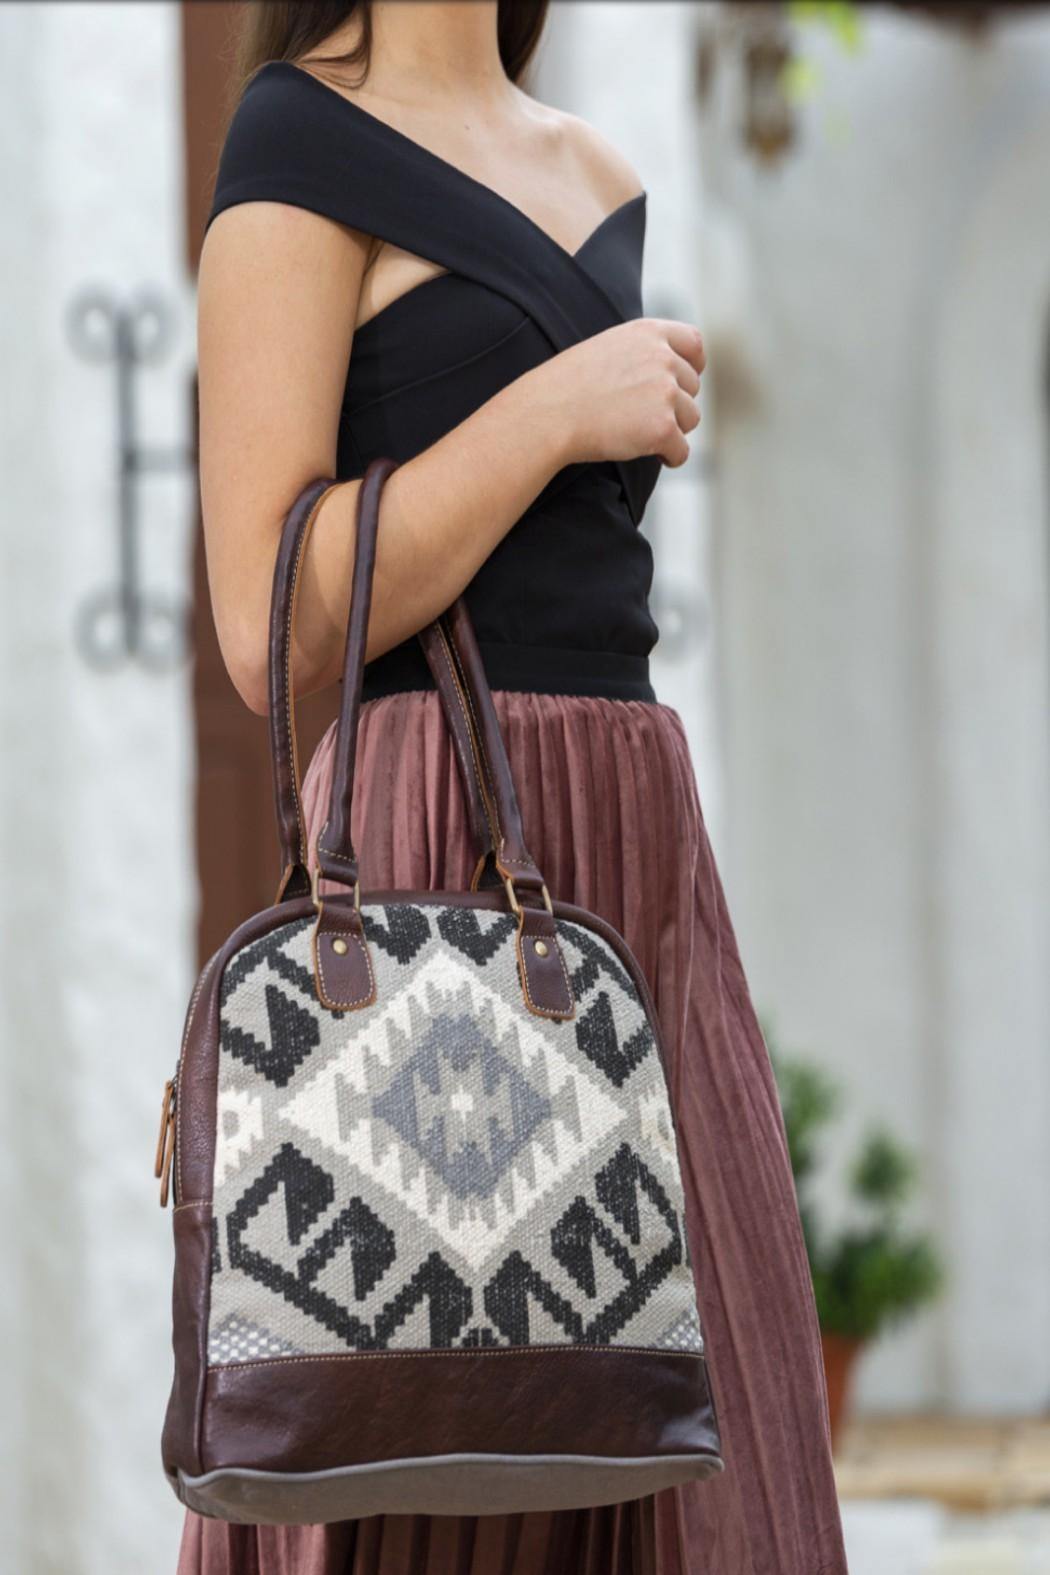 Myra Bags Craggy Small Bag From Kansas By Seirer S Clothing Shoptiques Shop with confidence on ebay! craggy small bag